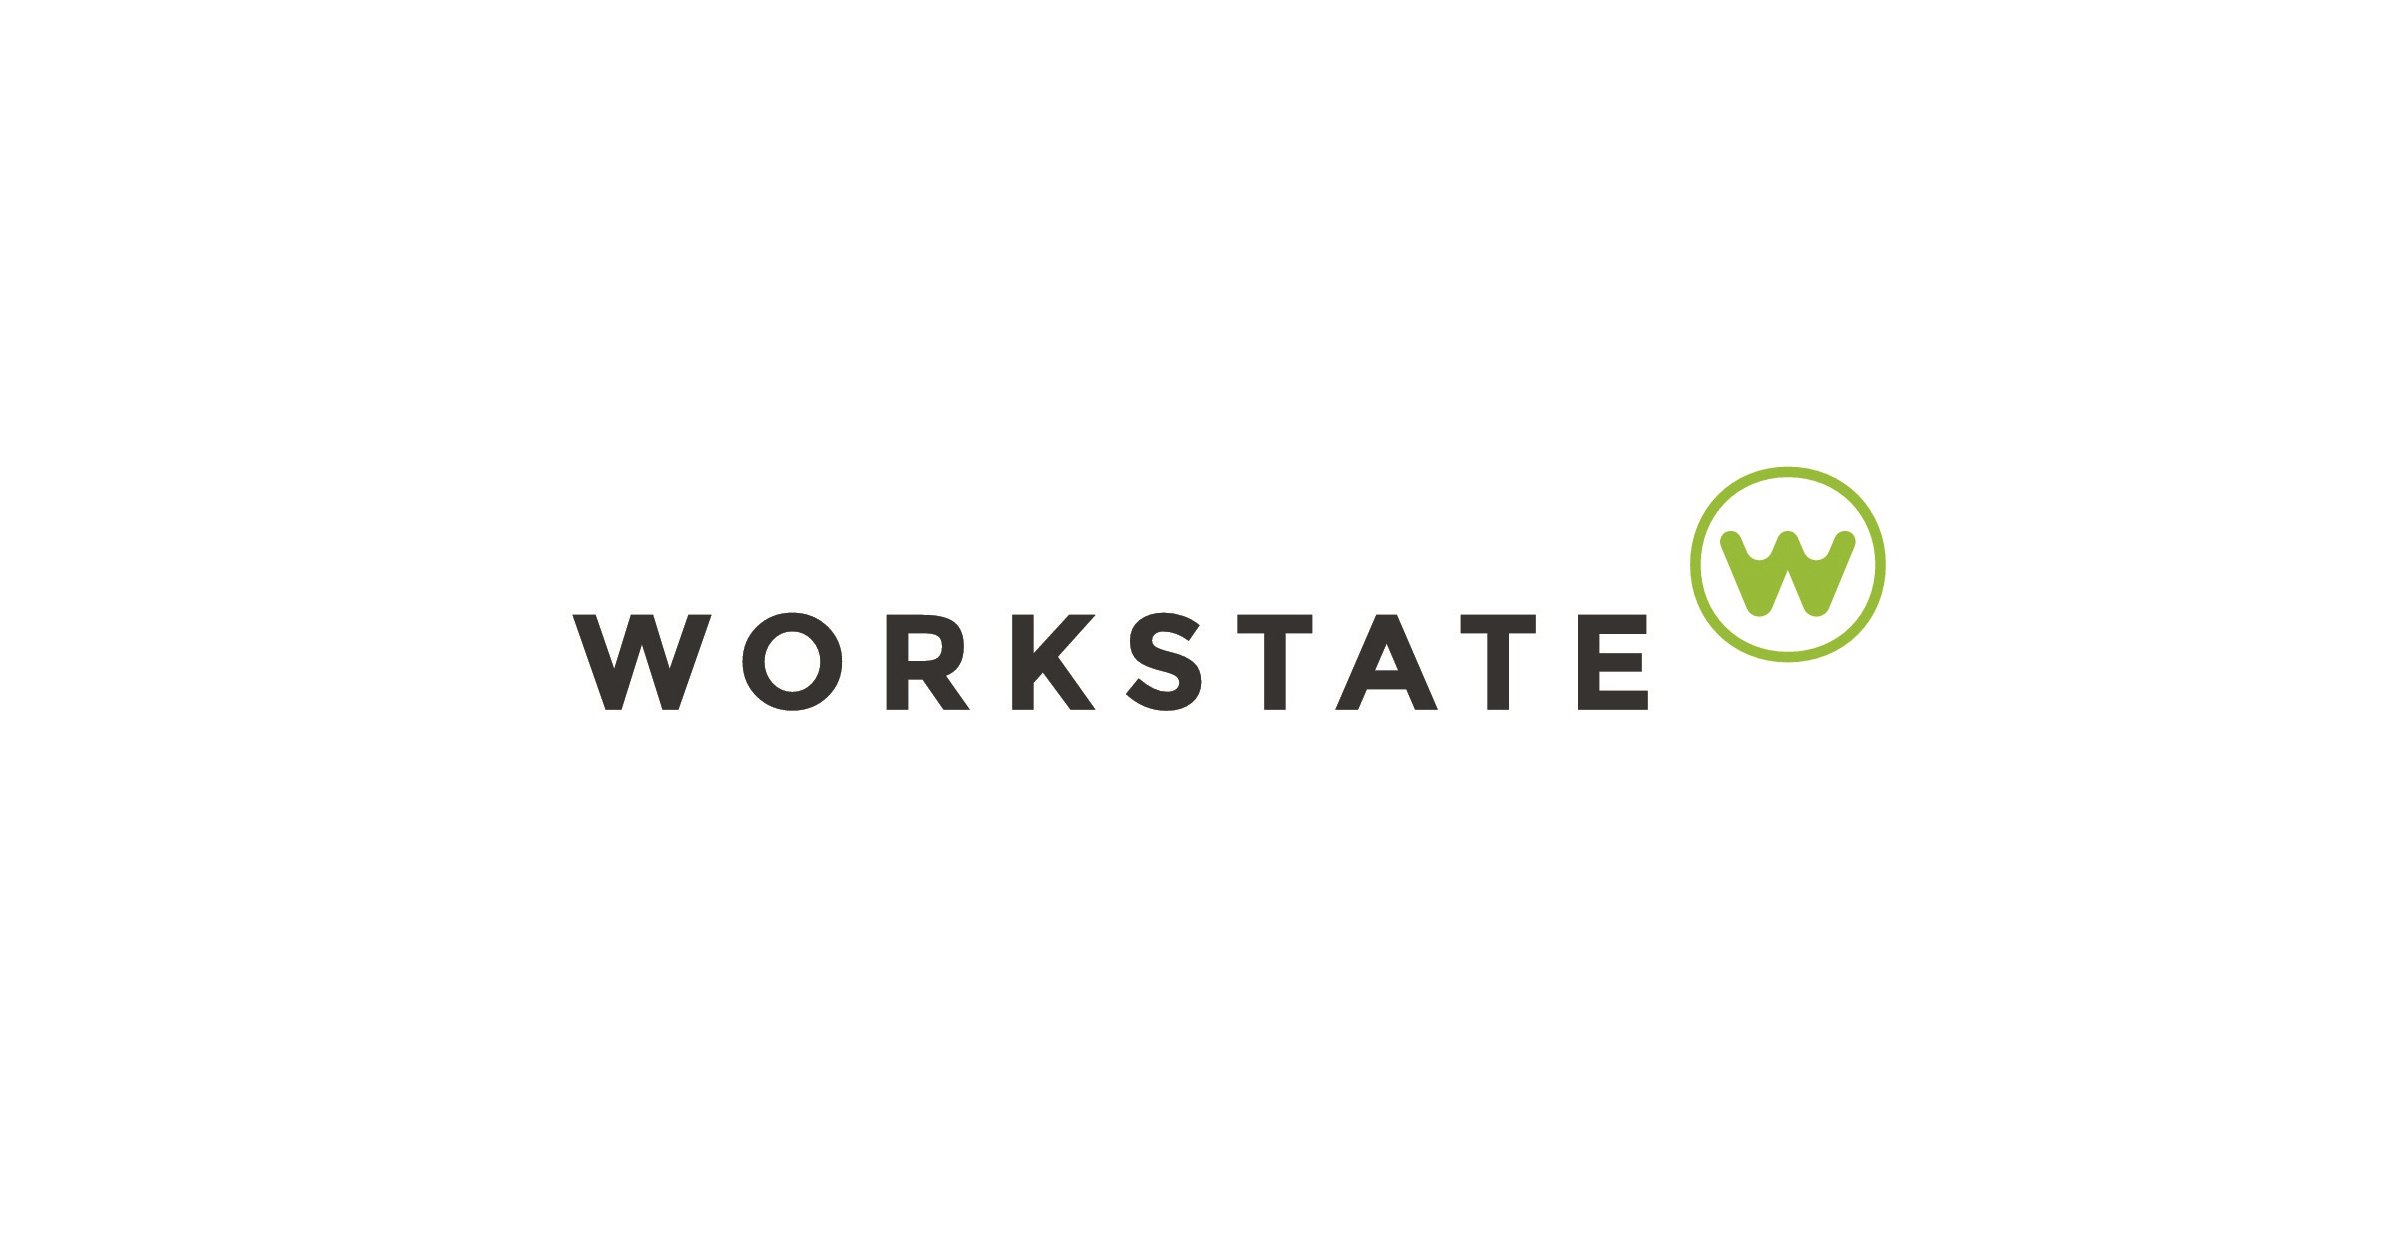 Workstate | Workstate Codes: OpenAI Gym on Windows Ubuntu